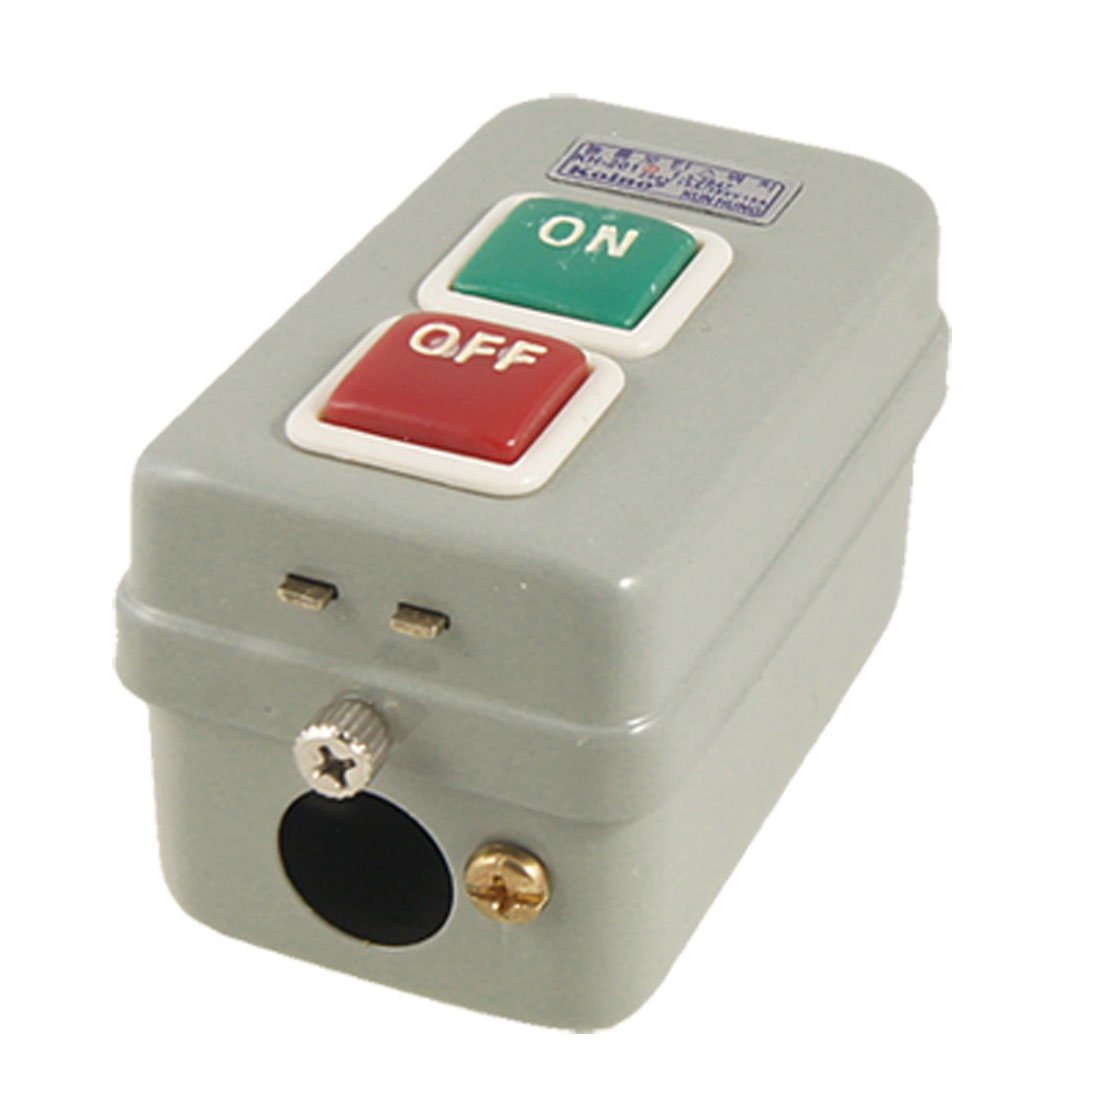 3P 250VAC 15A 380VAC On/Off Self Locking Power Pushbutton Switch KH-201